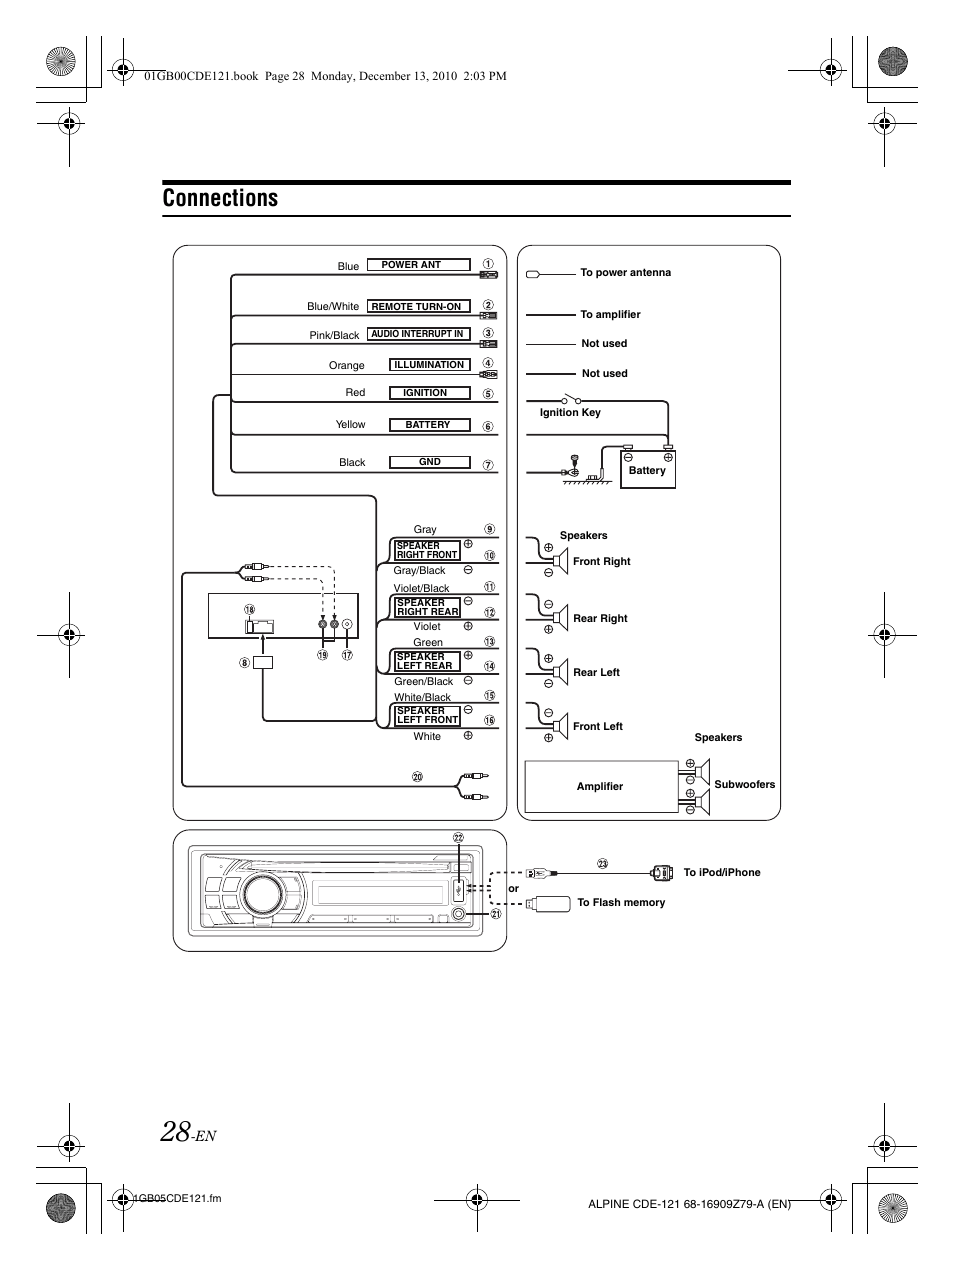 alpine cde 102 wiring diagram 14 8 kenmo lp de \u2022alpine cde 102 wire diagram manual e books rh 41 maria sievers de alpine cde 100 wiring diagram alpine cde 102 bluetooth